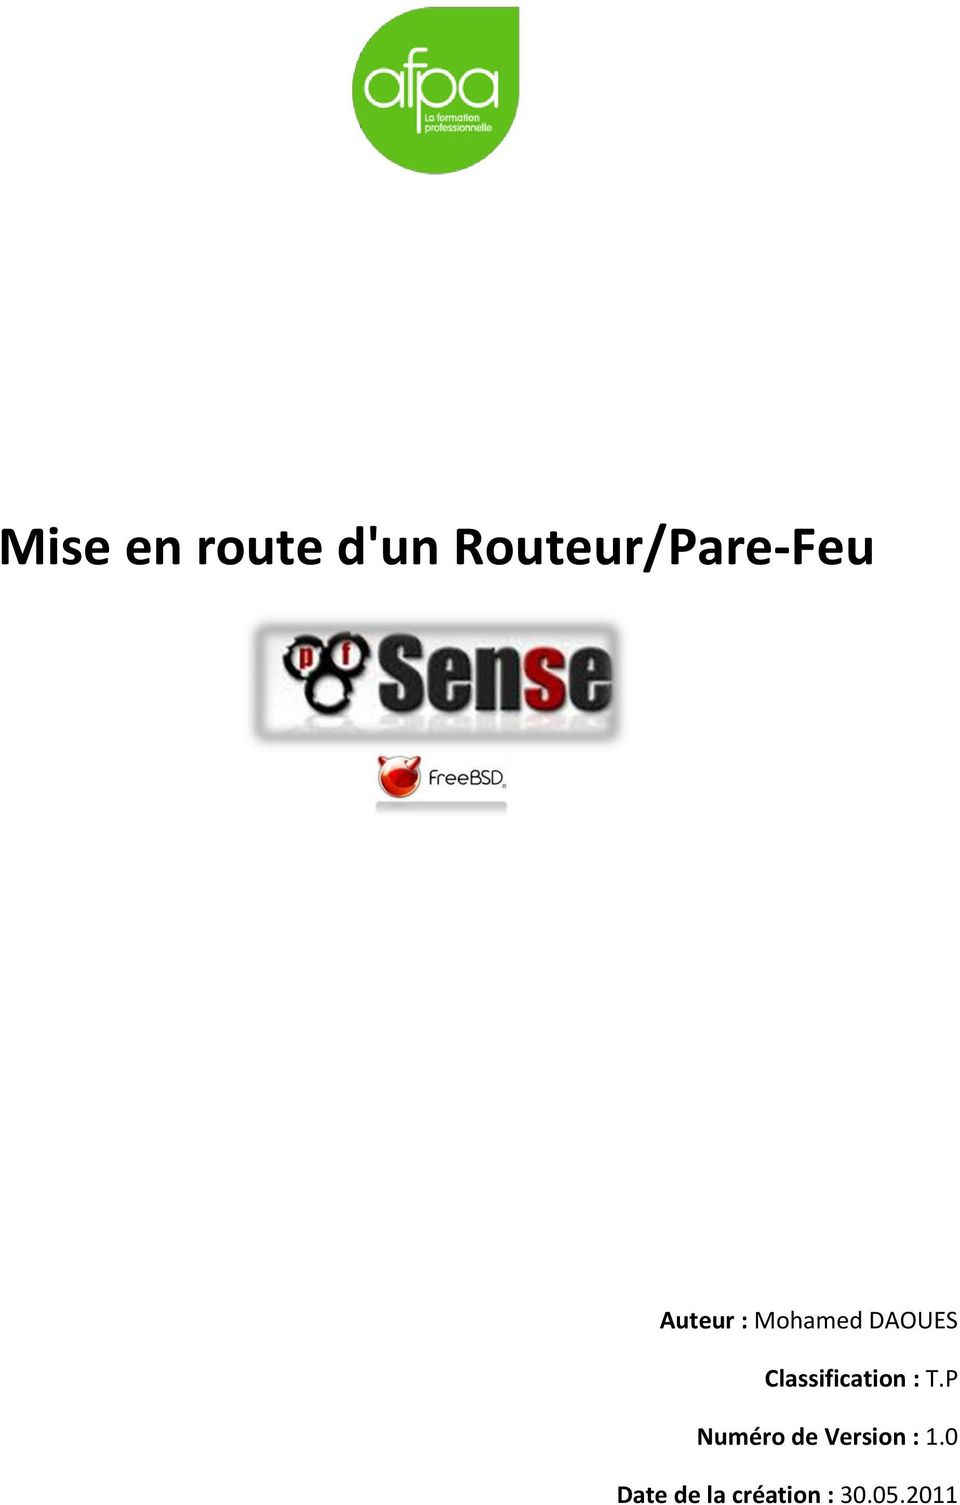 DAOUES Classification : T.